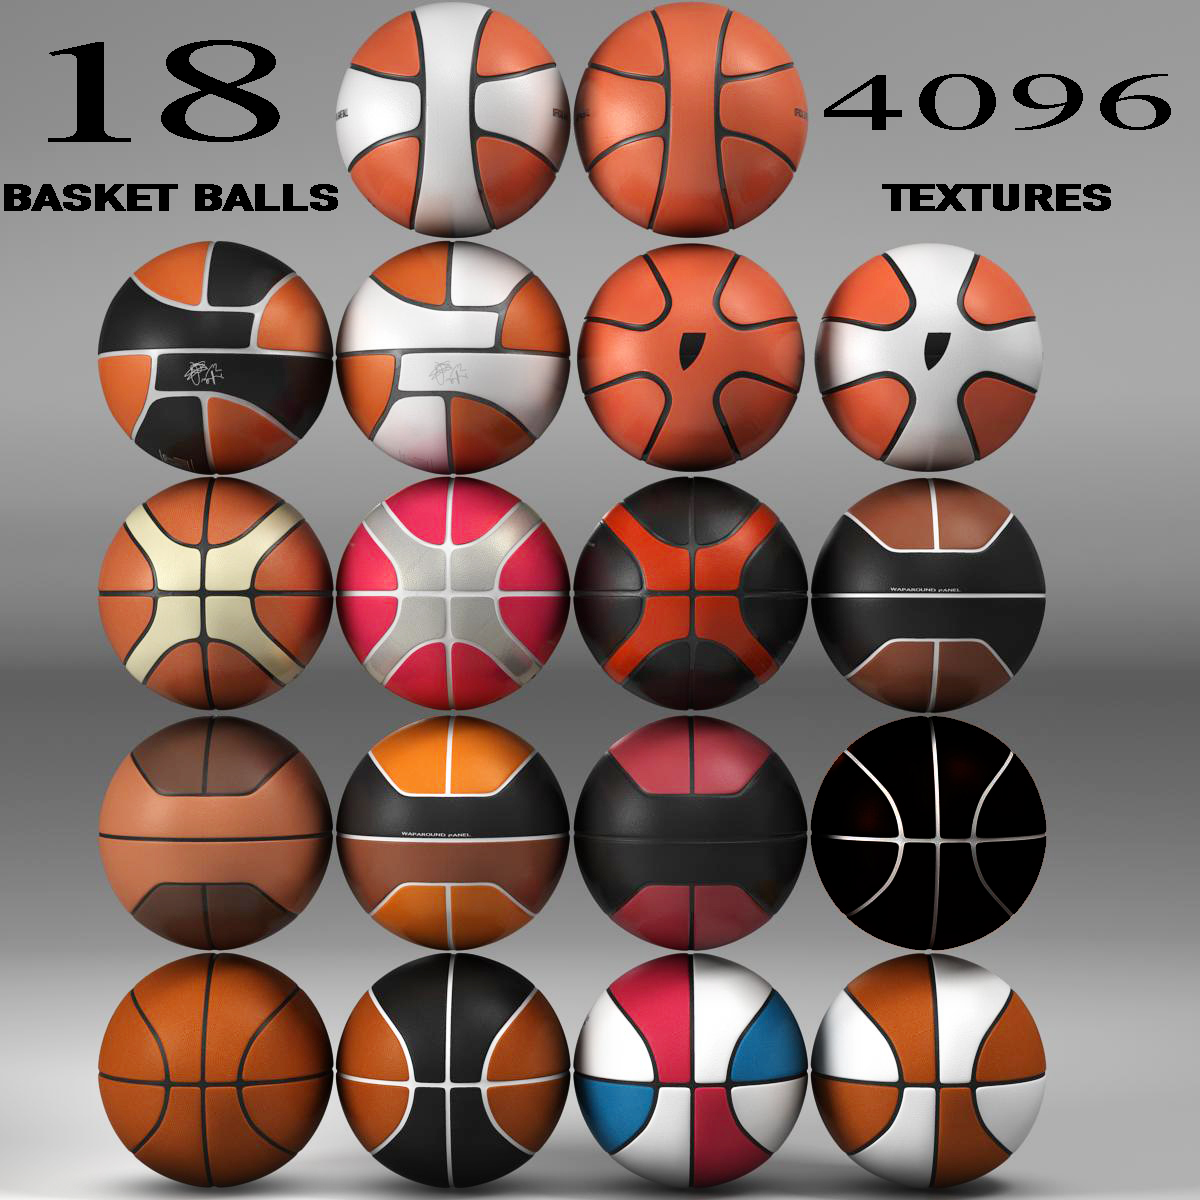 basketbalový míč sada 3d model 3ds max fbx c4d ma mb obj 165928